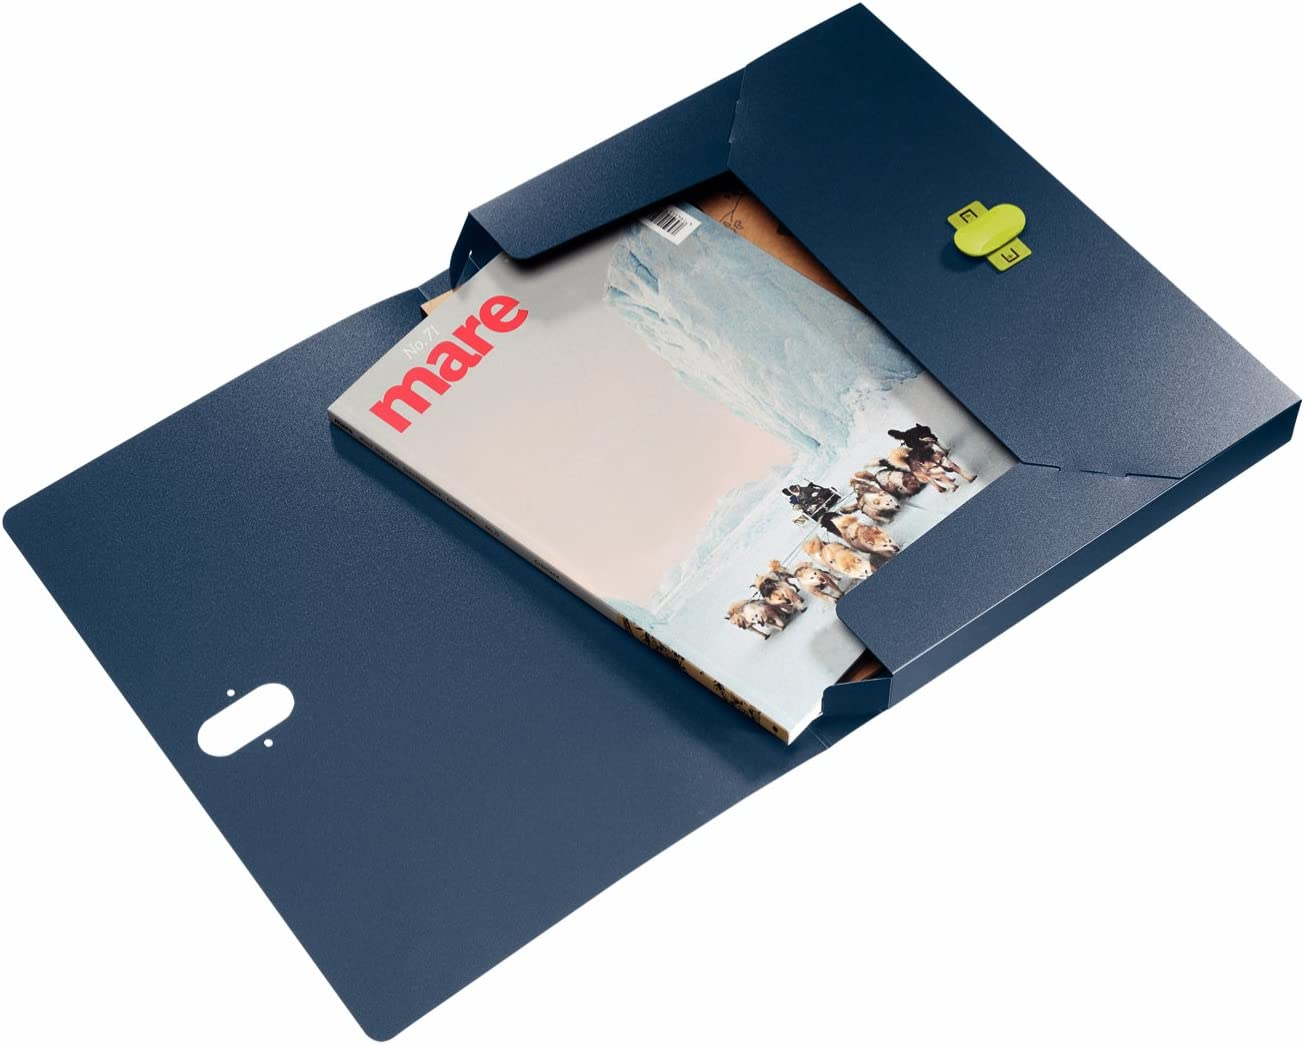 Recycled and Recyclable Flexible Plastic Recyclable fastening 46220069 Holds up to 150 A4 Sheets Dark blue Leitz 3-Flap Folder re:cycle Range